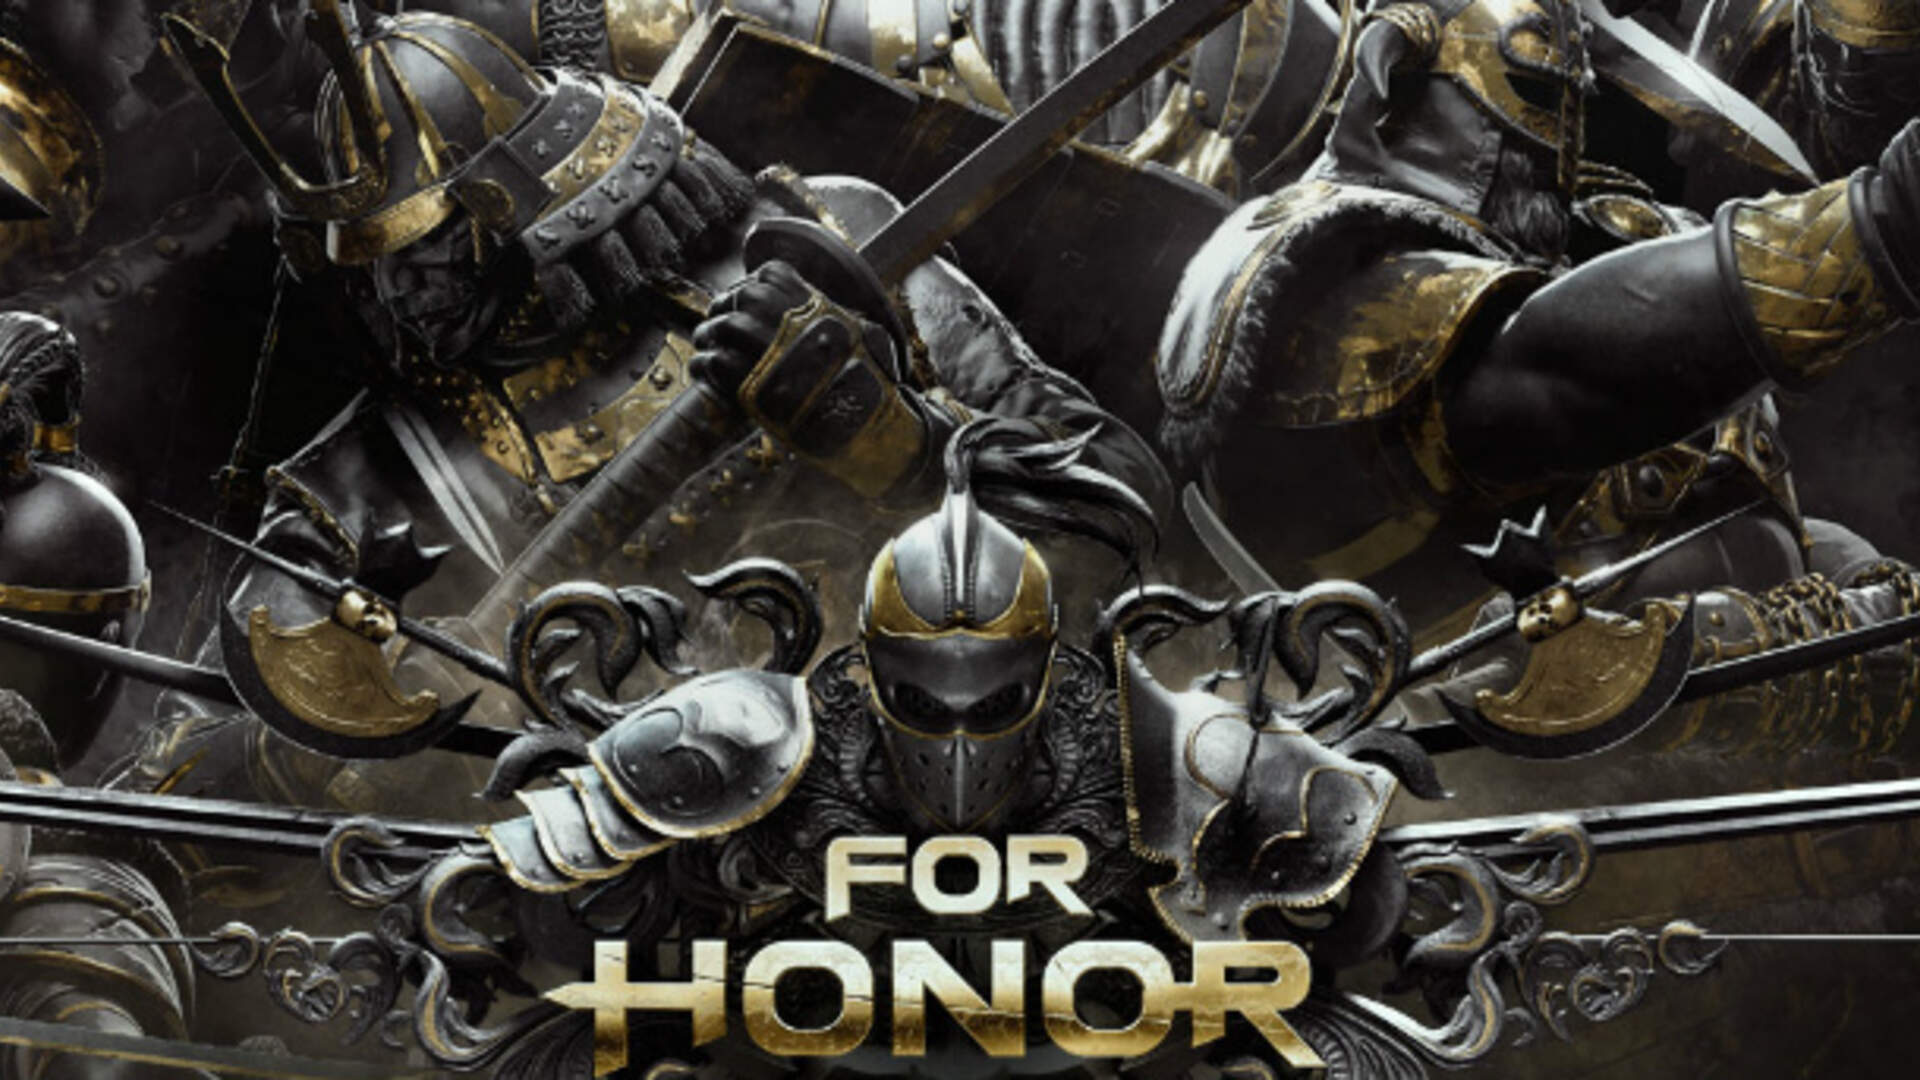 For Honor is Still Finding Itself a Year Later